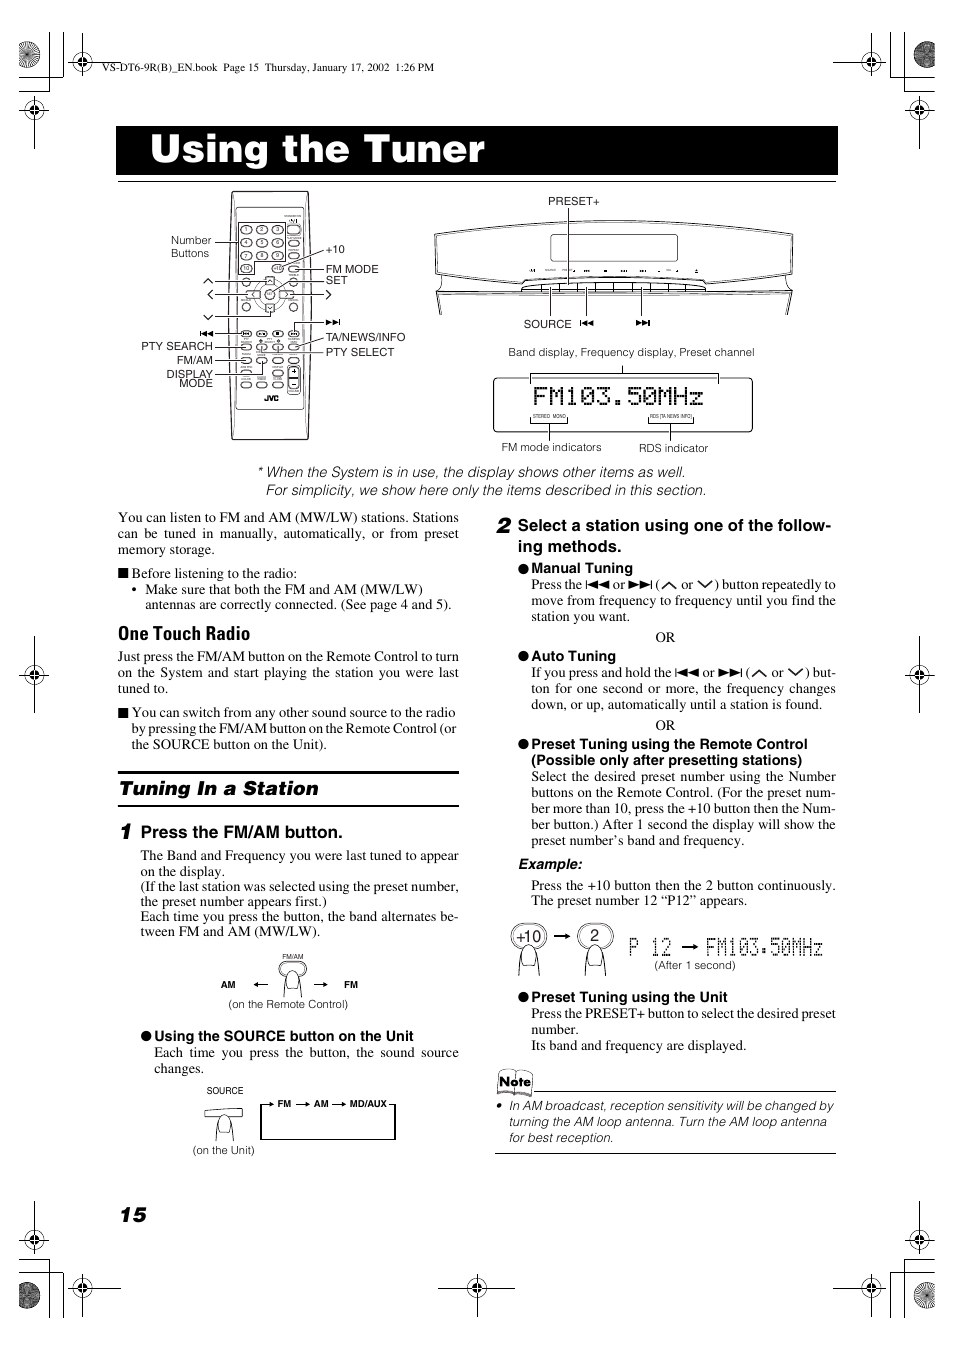 Using the tuner, One touch radio, Tuning in a station | JVC VS-DT6R EN User  Manual | Page 18 / 32